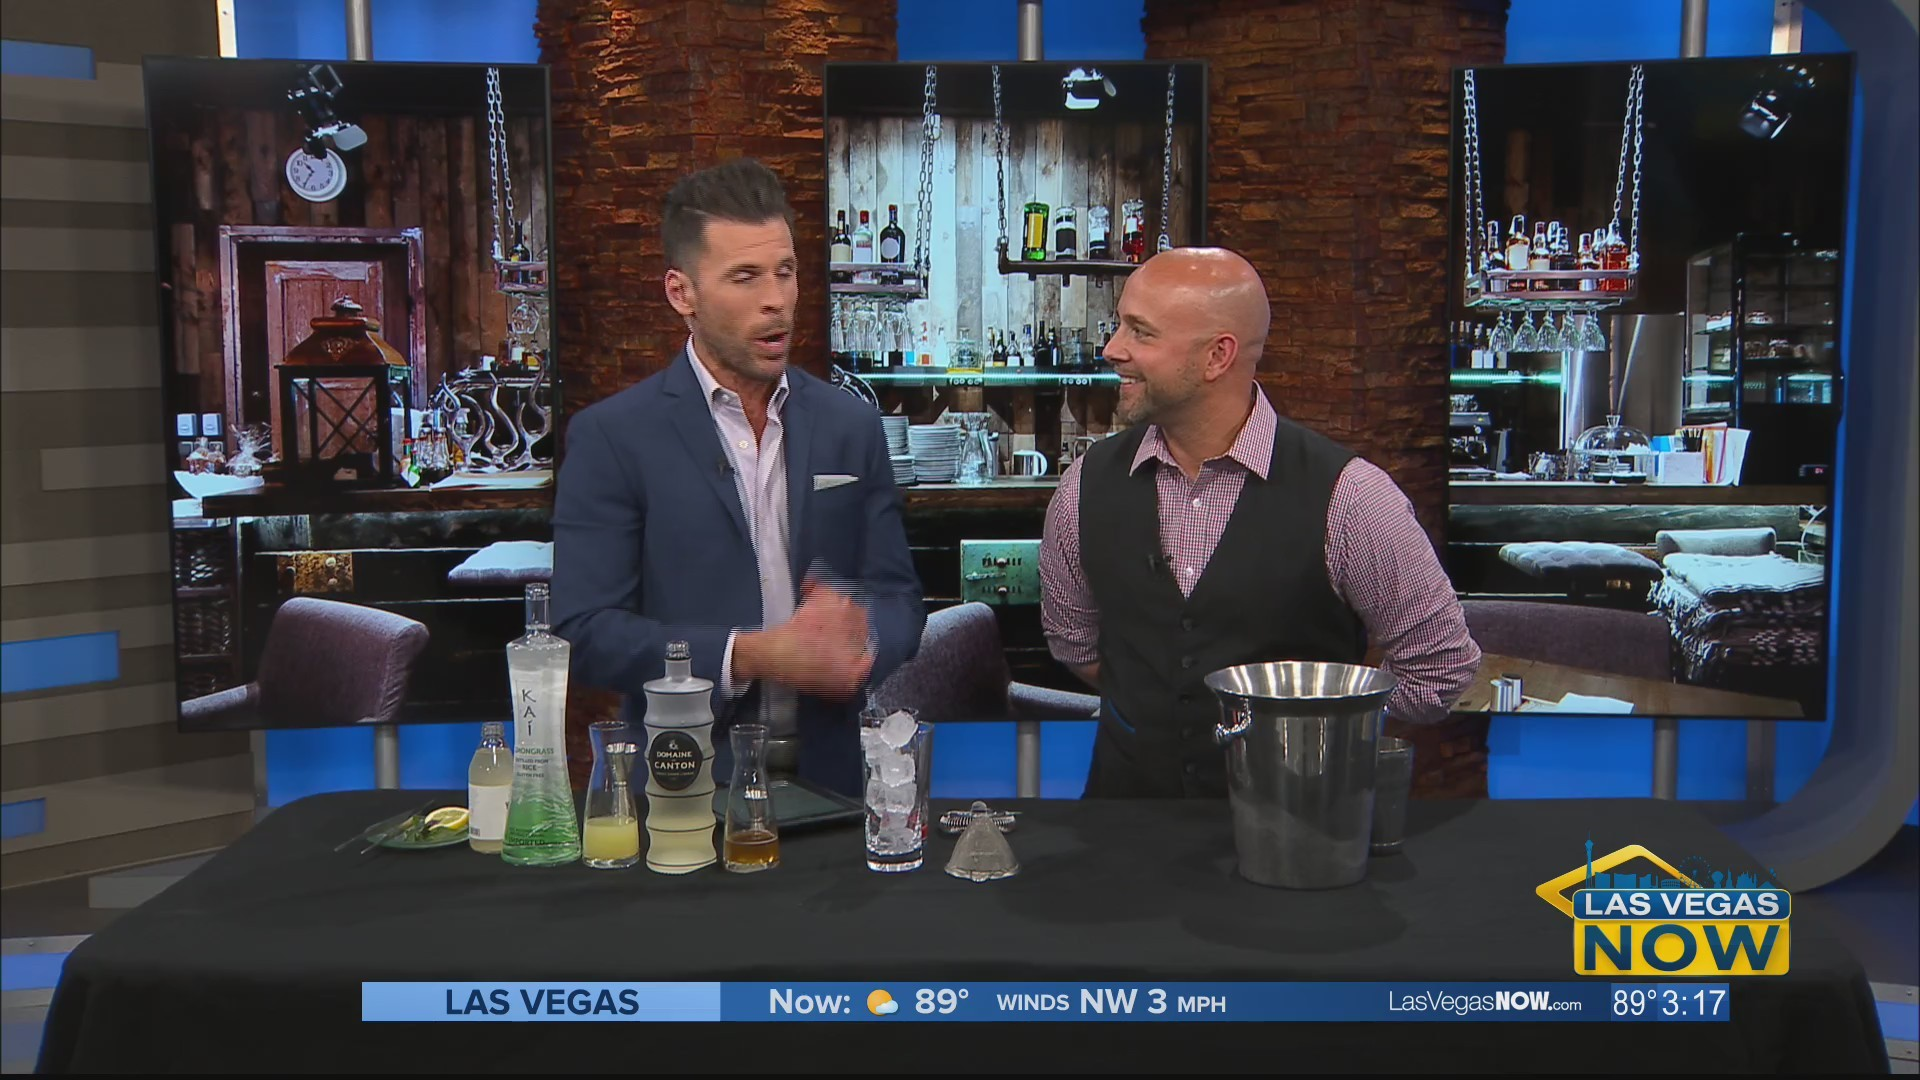 Creating cool concoctions with Hakkasan Group